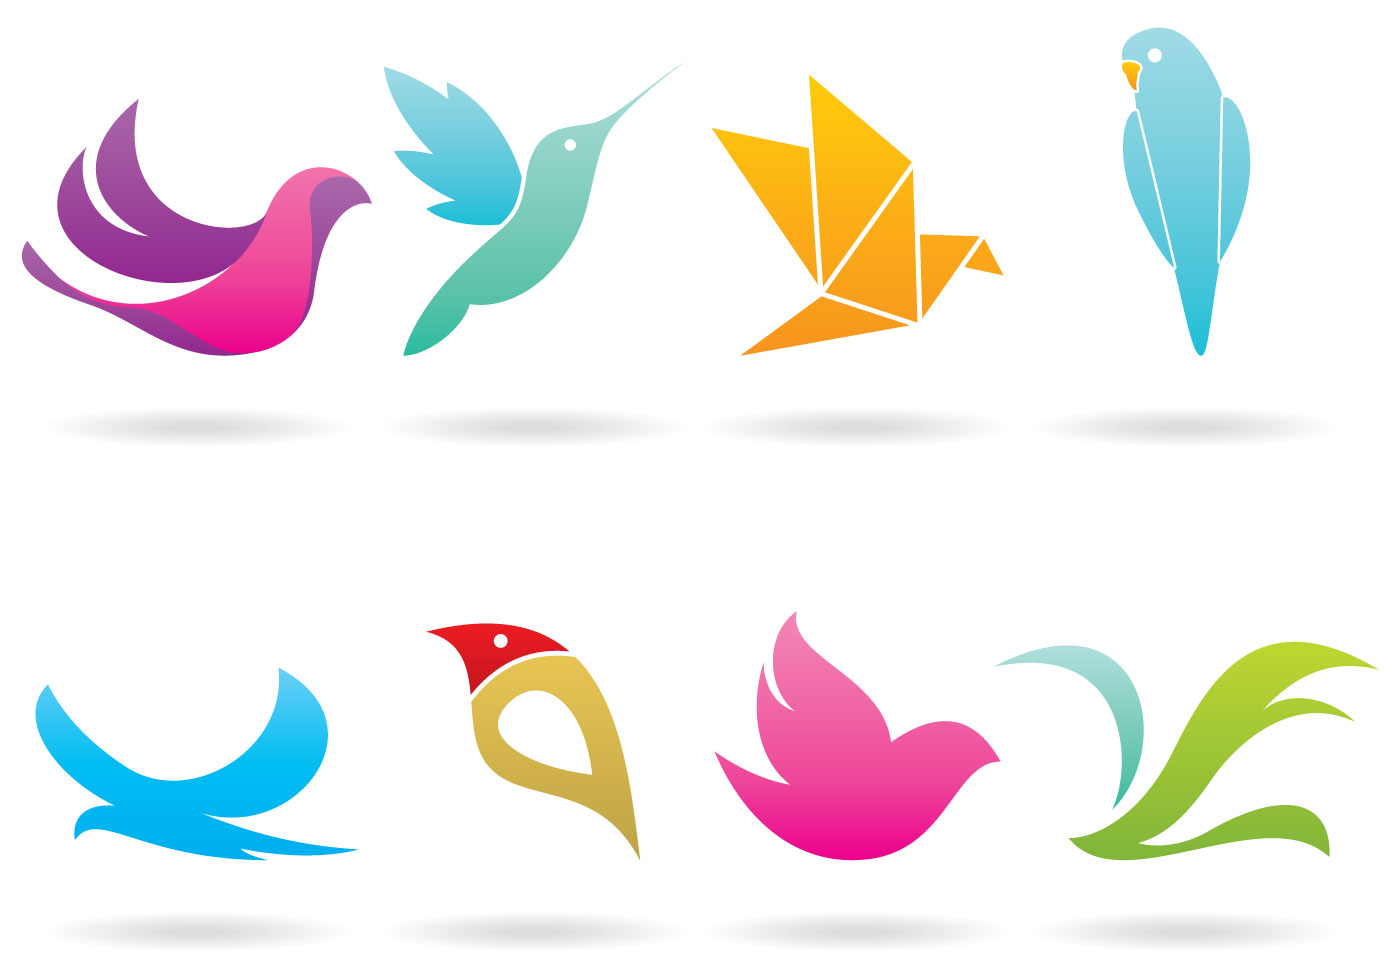 colorful bird logo vectors download free vector art japanese clip art coloring pages japanese clip art cannoli